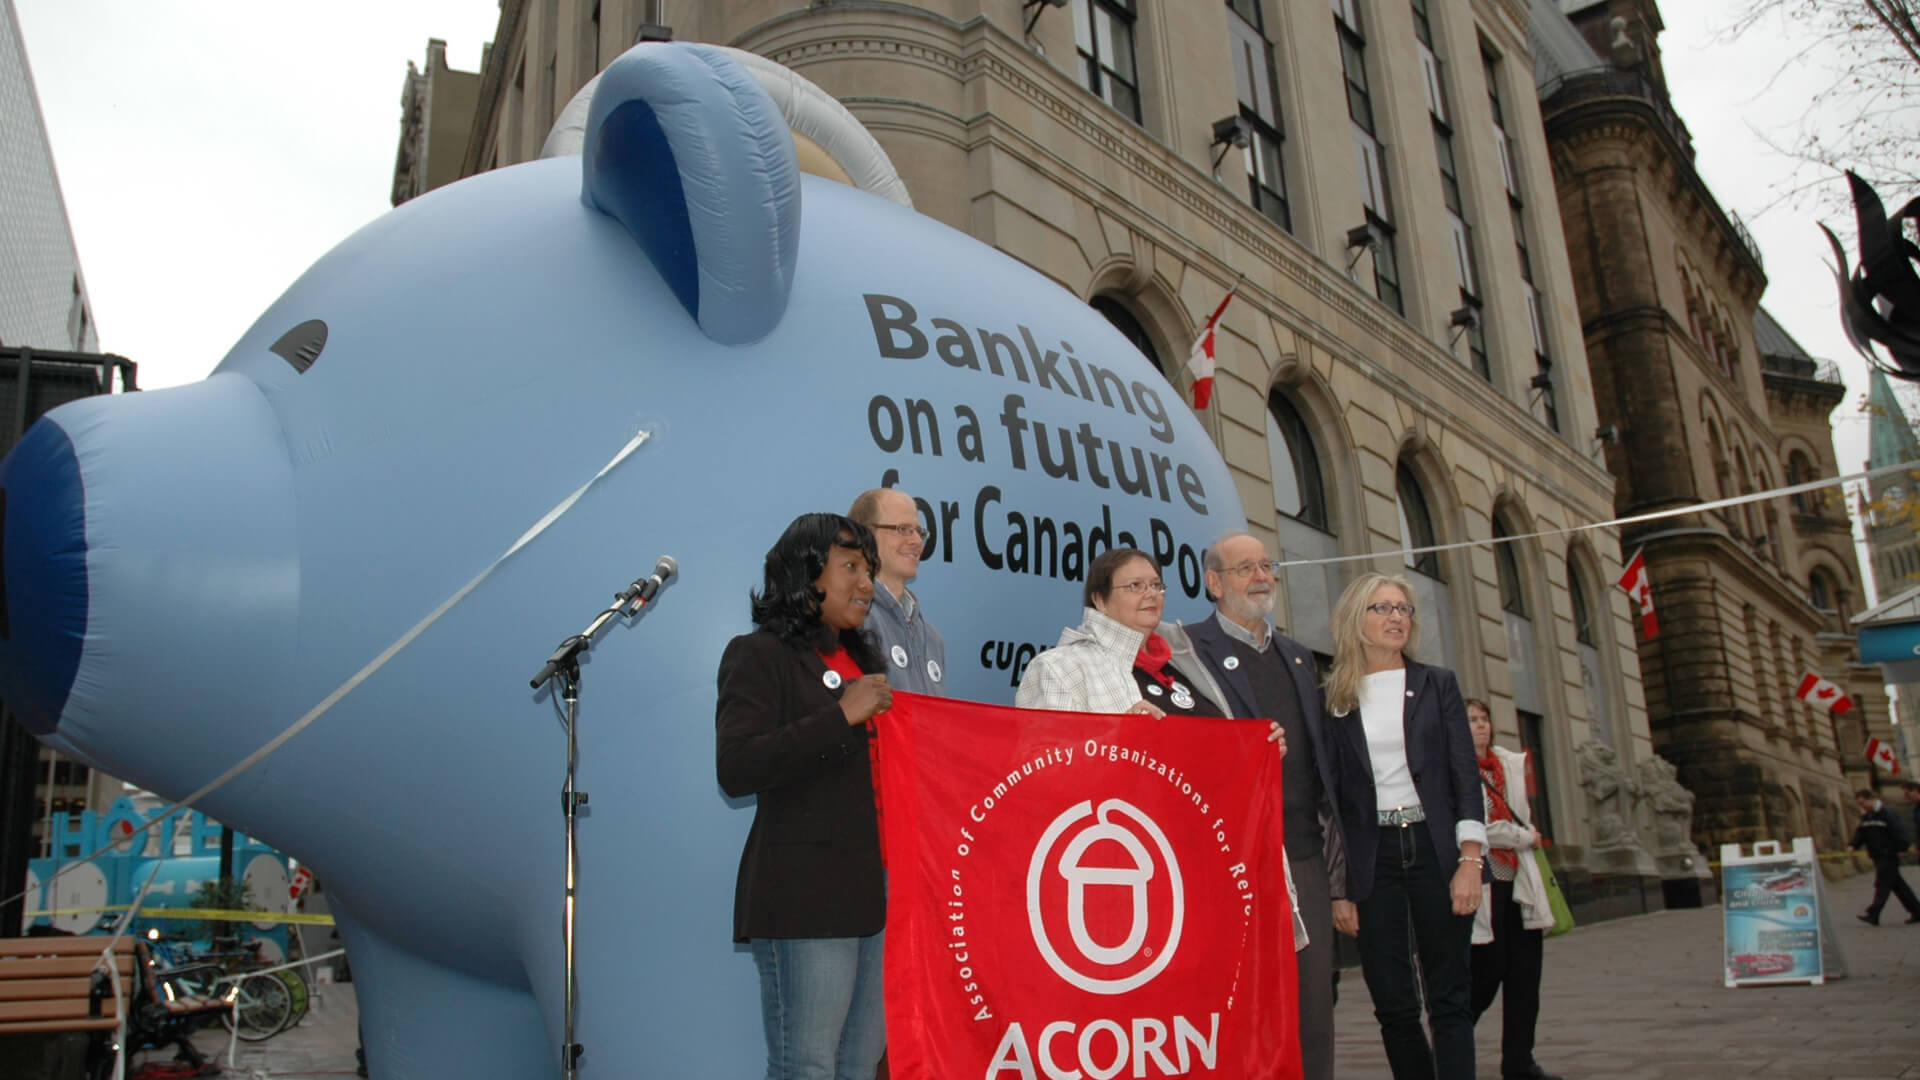 CUPW launched its postal banking campaign with a giant inflatable piggy bank in downtown Ottawa.